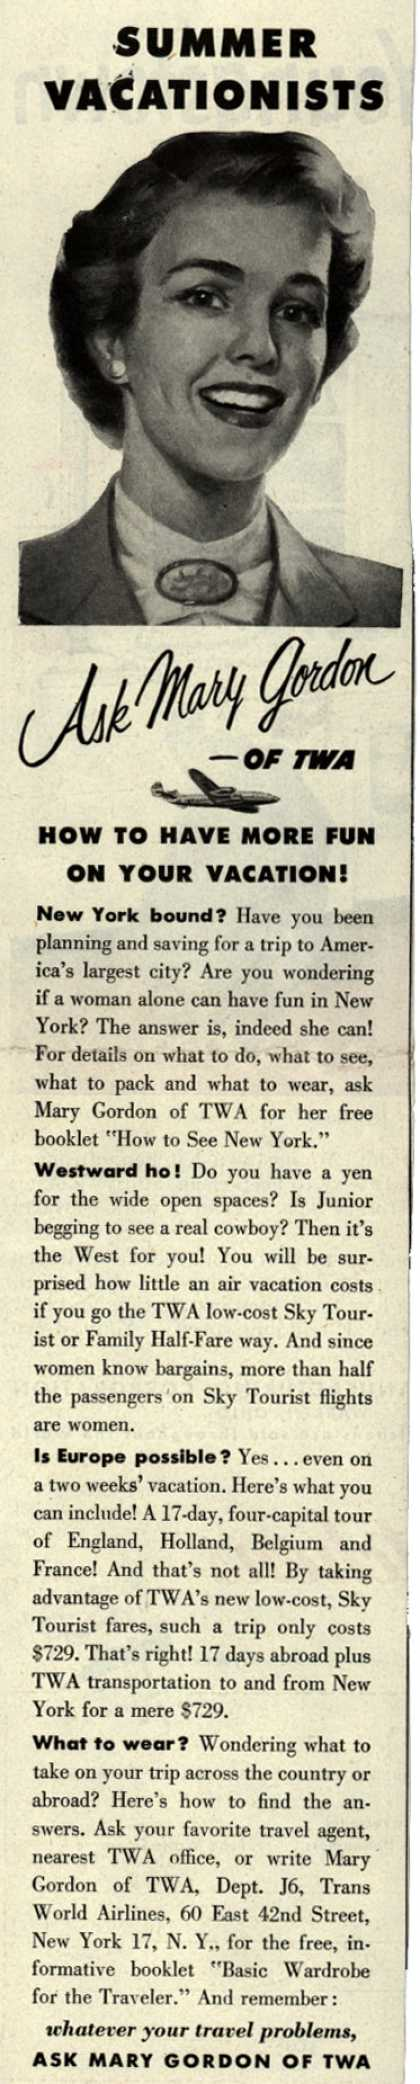 Trans World Airline's Mary Gordon – Summer Vacationists Ask Mary Gordon of TWA How To Have More Fun On Your Vacation (1952)